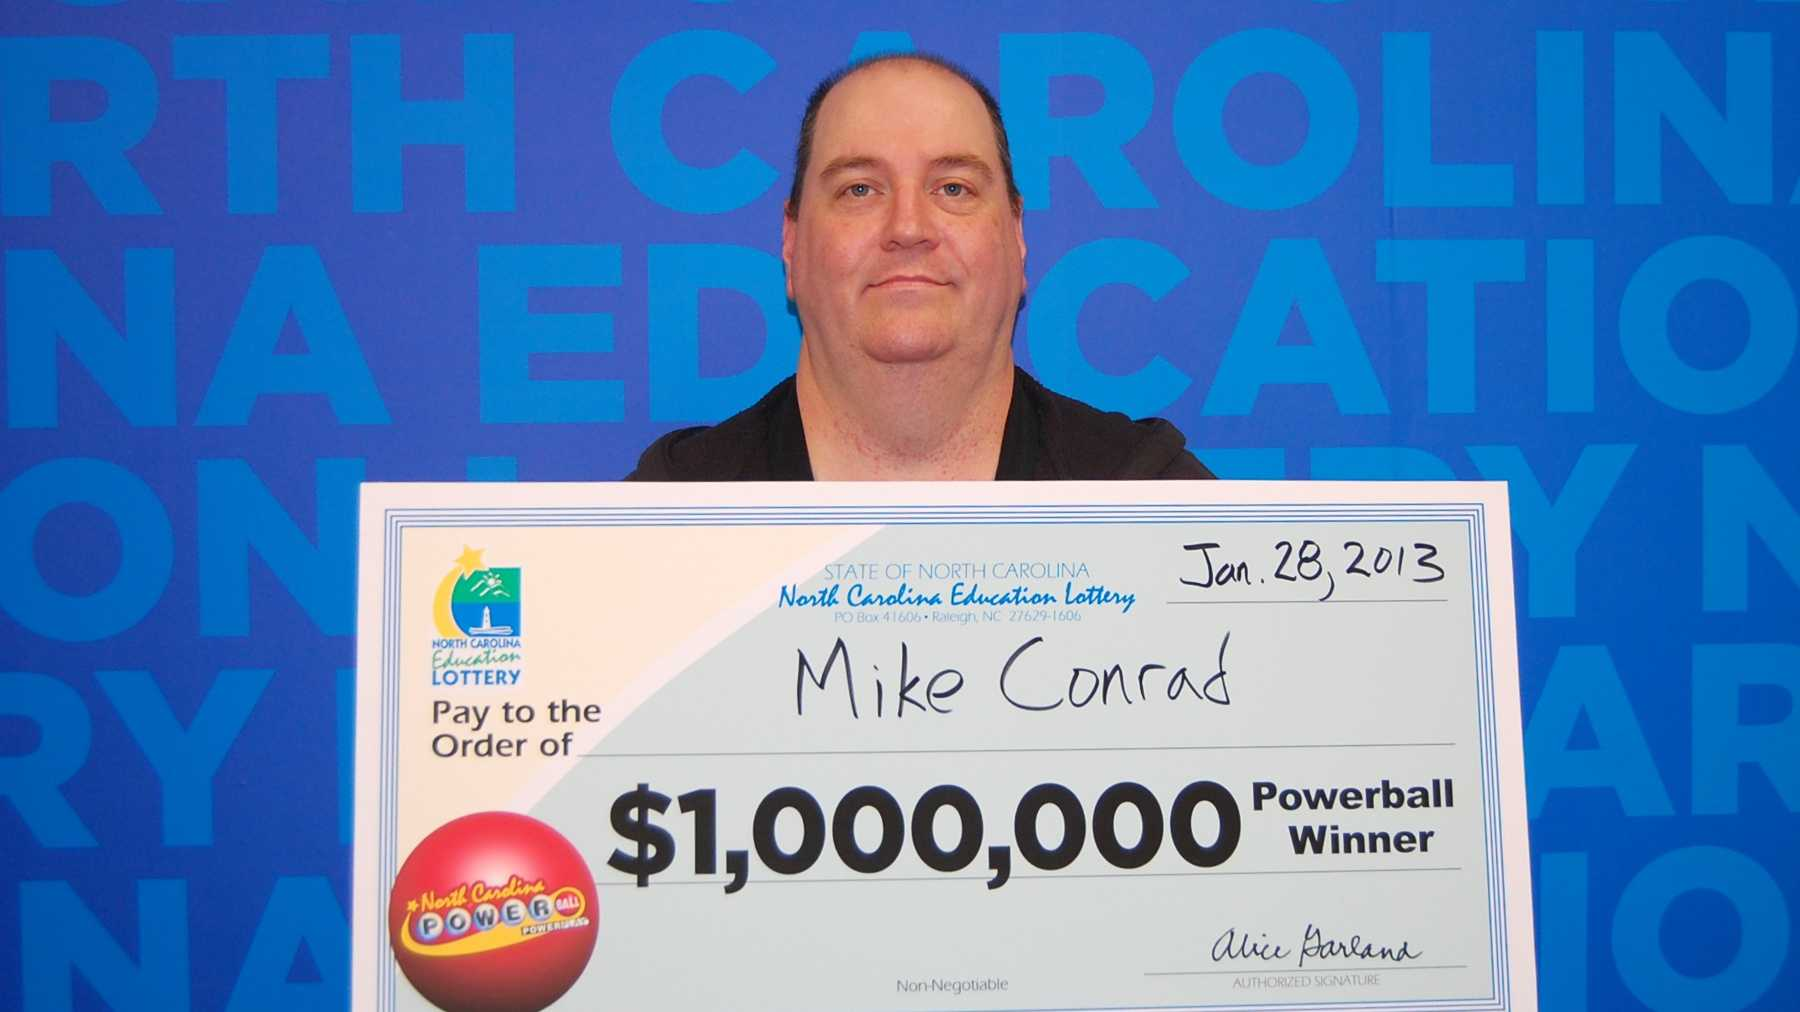 Mike Conrad (North Carolina Education Lottery)